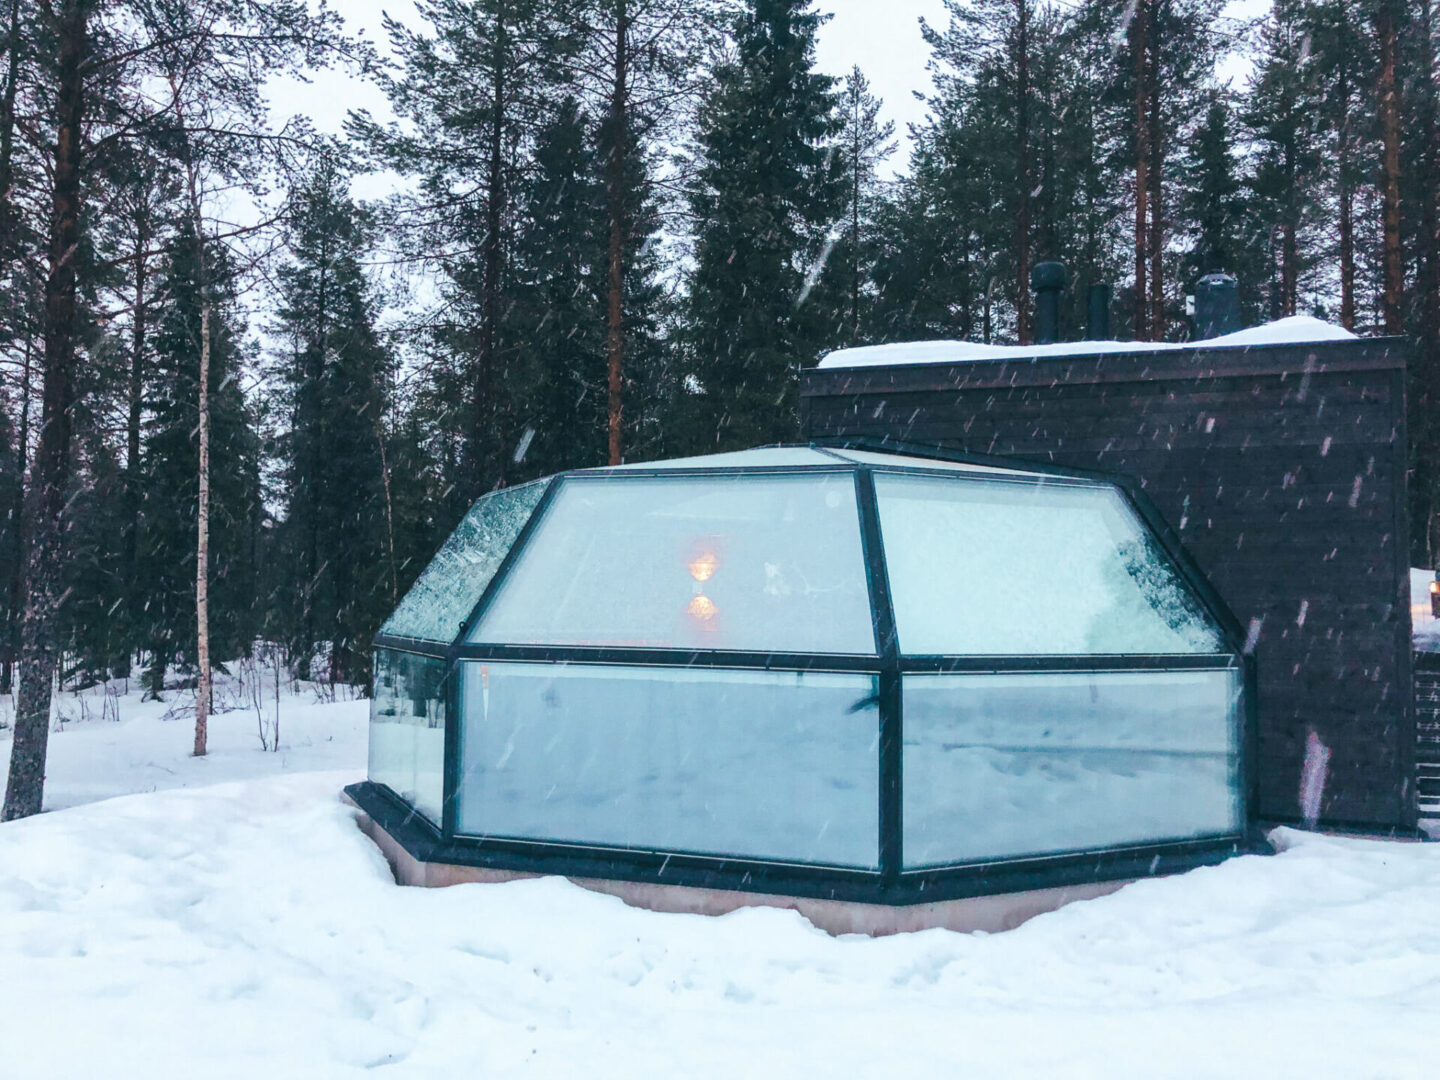 Snow falling on a glass igloo in front of a forest